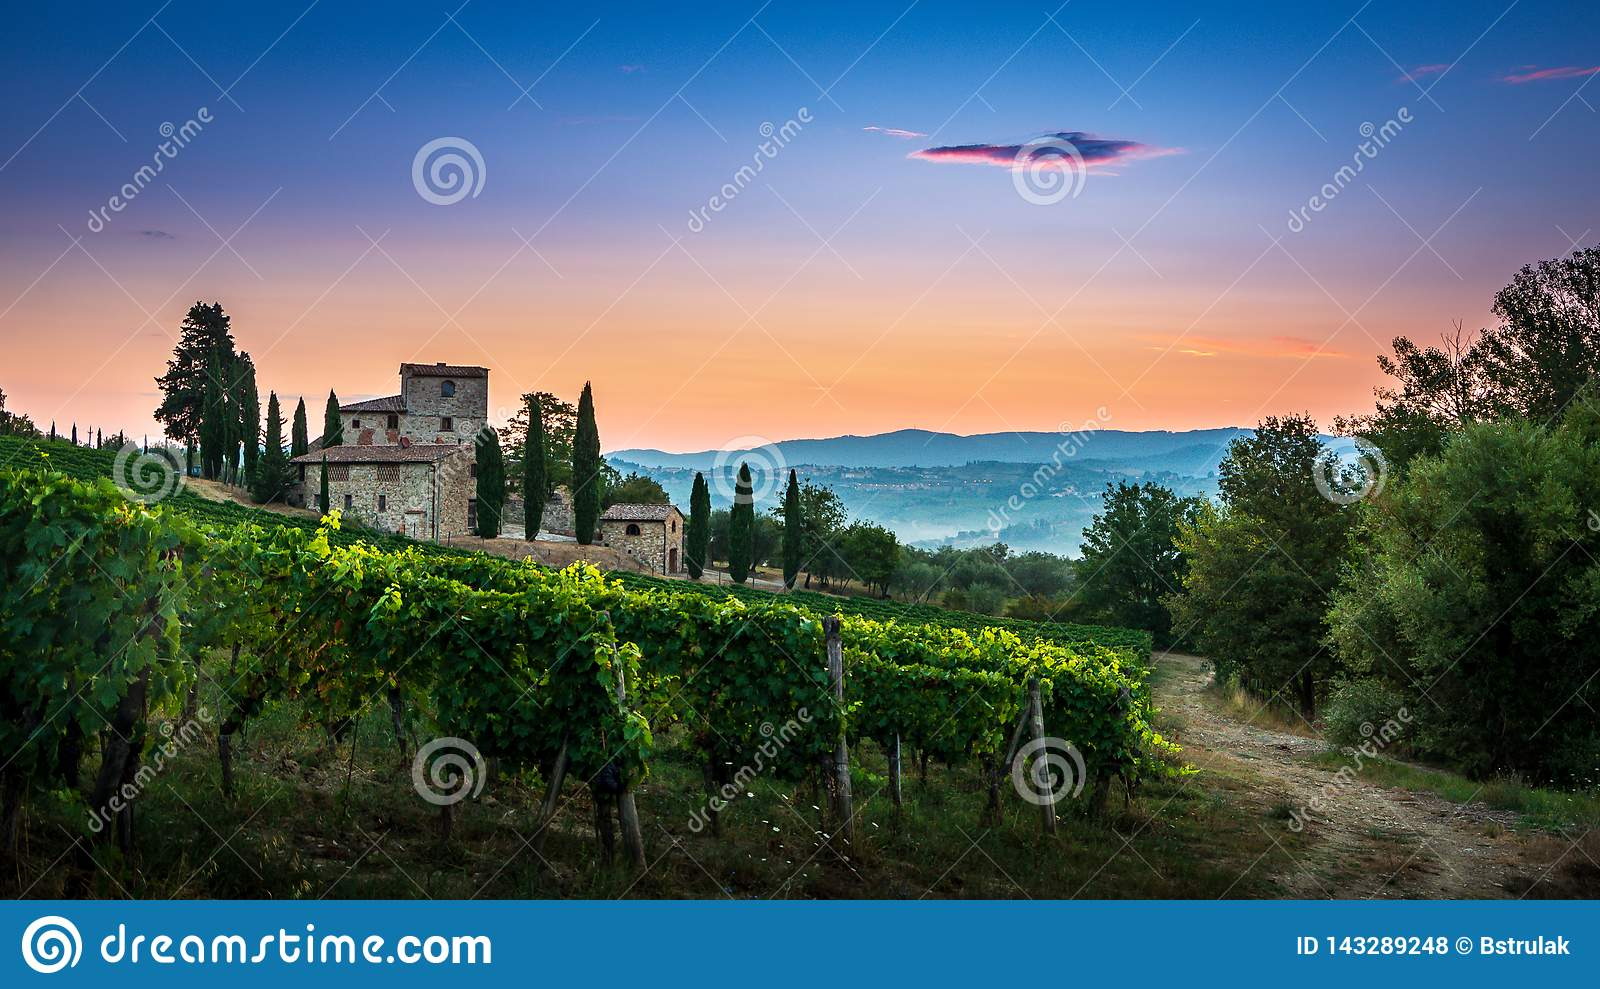 Panorama of Tuscan vineyard covered in fog at the dawn near Castellina in Chianti, Italy